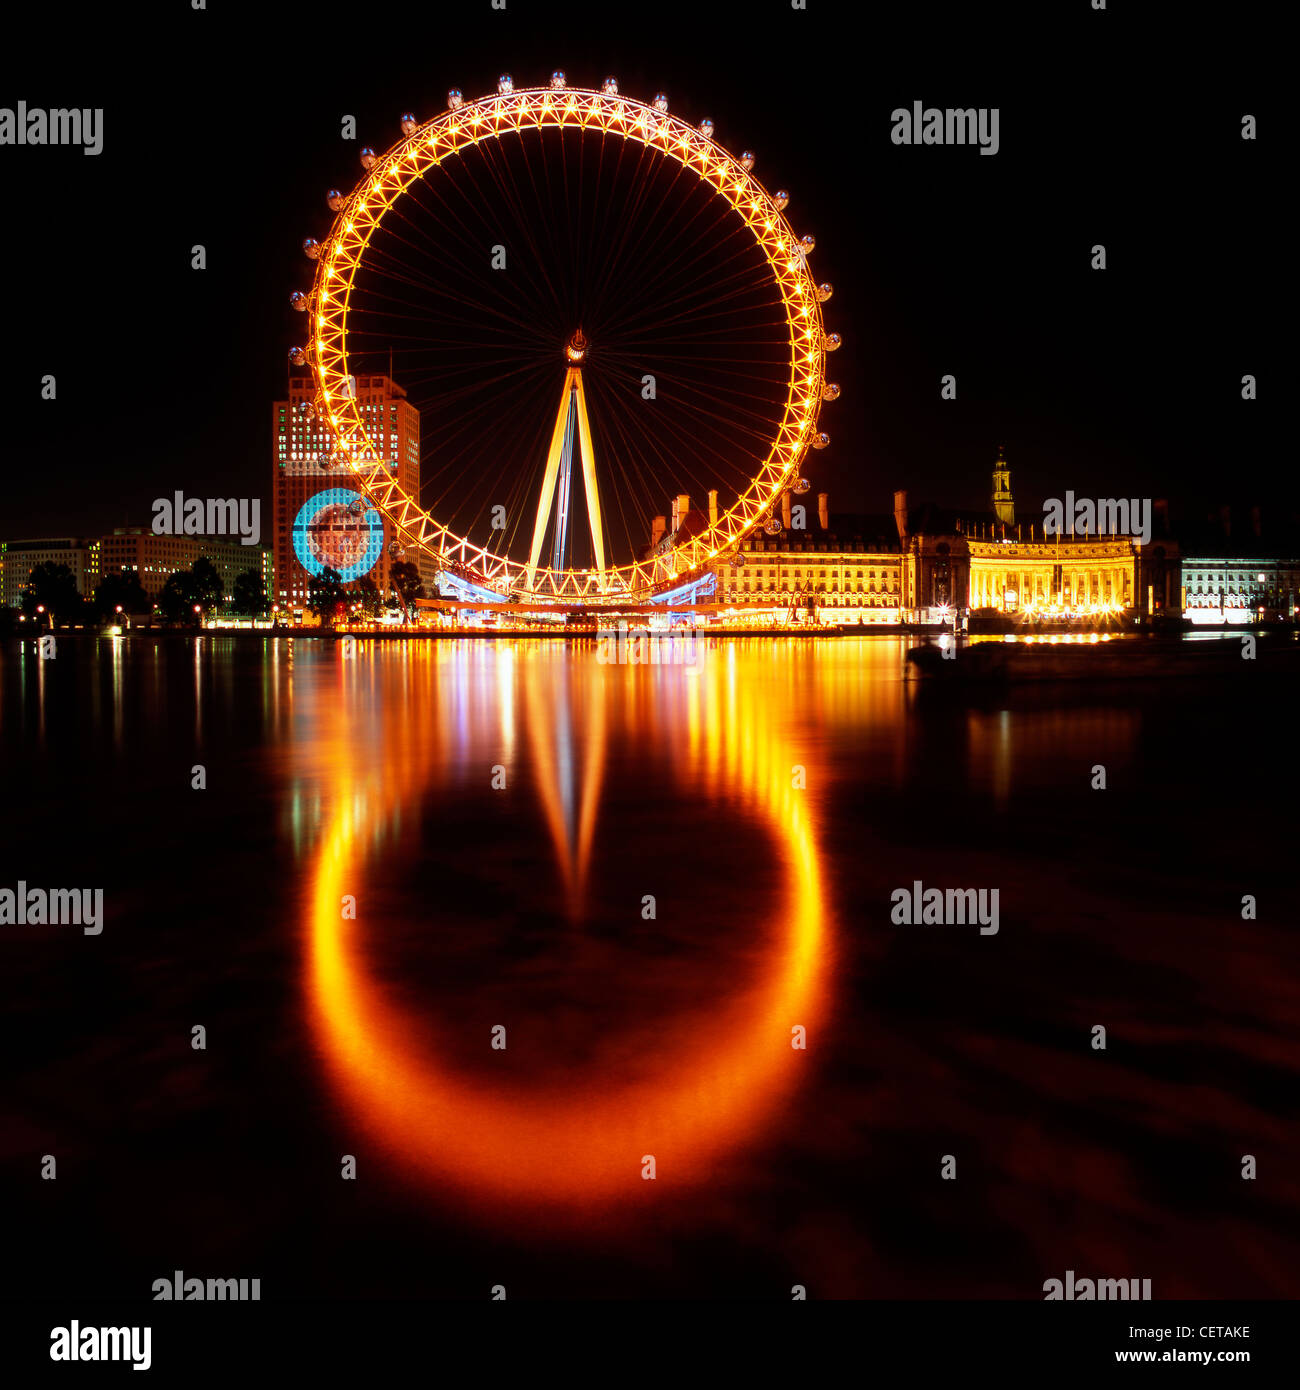 london eye stockfotos london eye bilder alamy. Black Bedroom Furniture Sets. Home Design Ideas